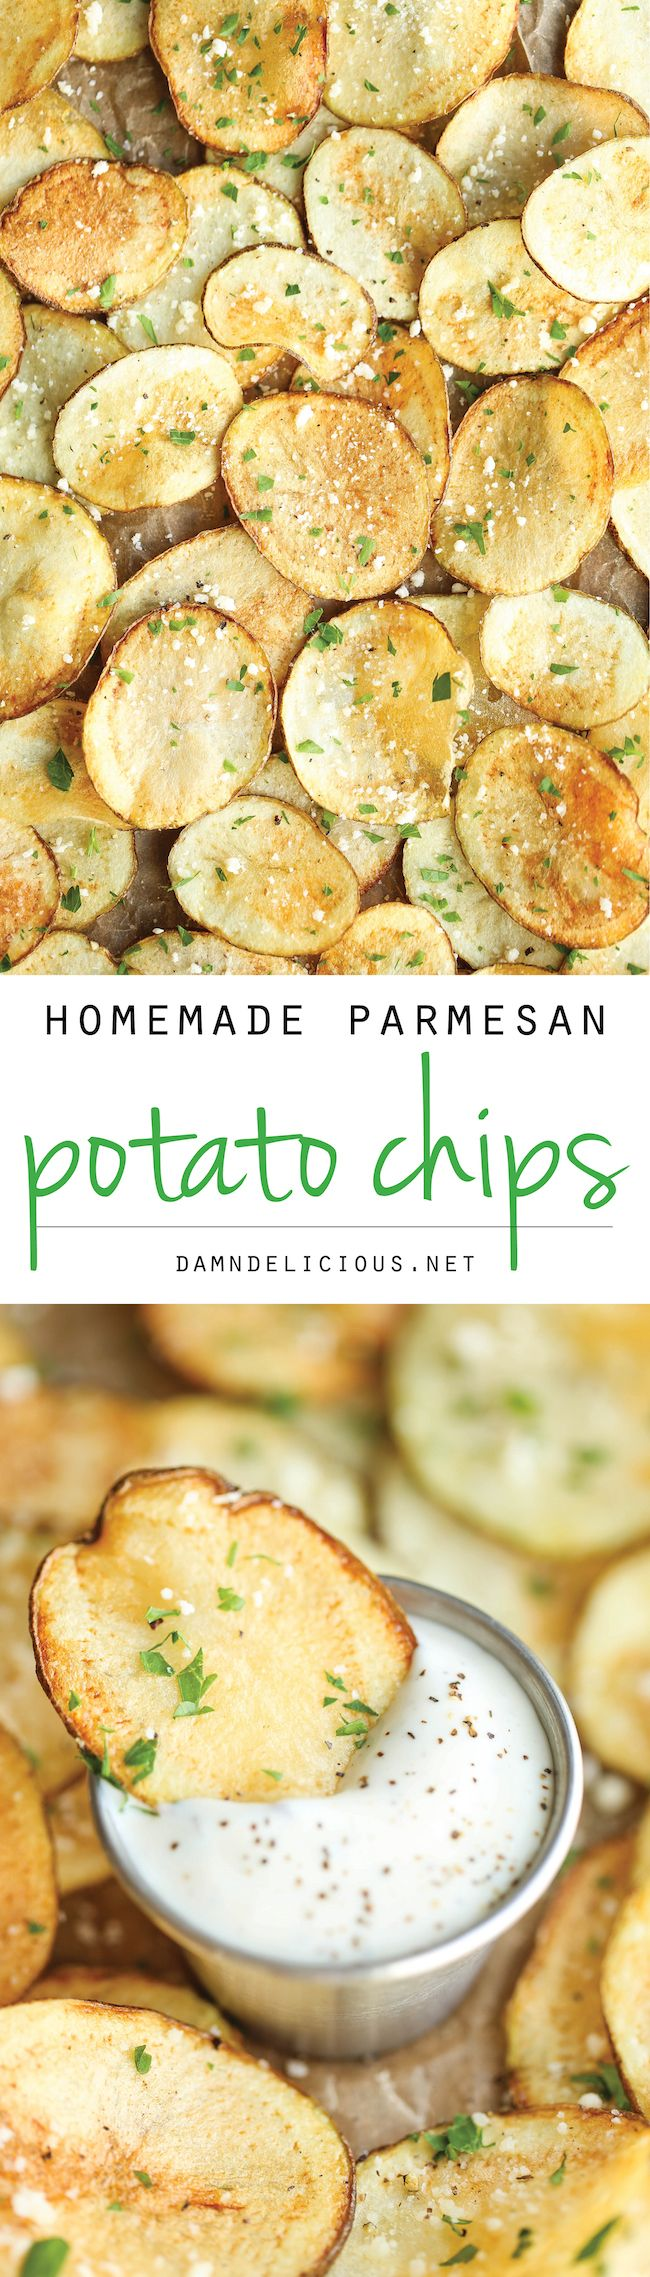 Homemade Parmesan Potato Chips - The easiest and cheapest DIY potato chips loaded with Parmesan goodness - and yes, it tastes 100x better than store-bought!